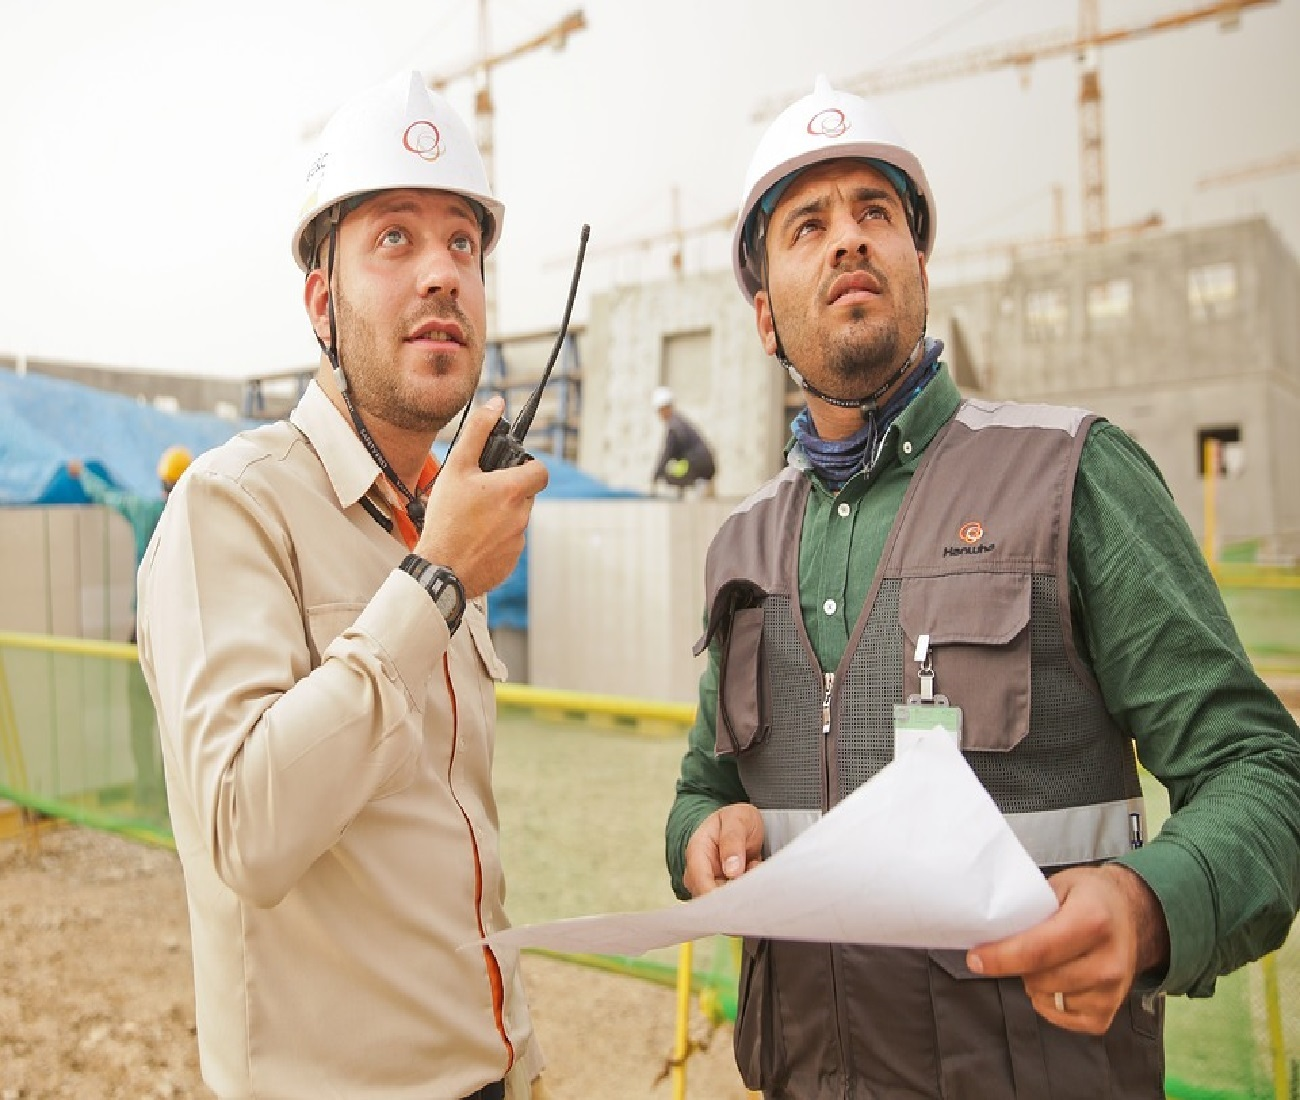 Ask the Expert: How do you turn a good safety program into a great safety program?